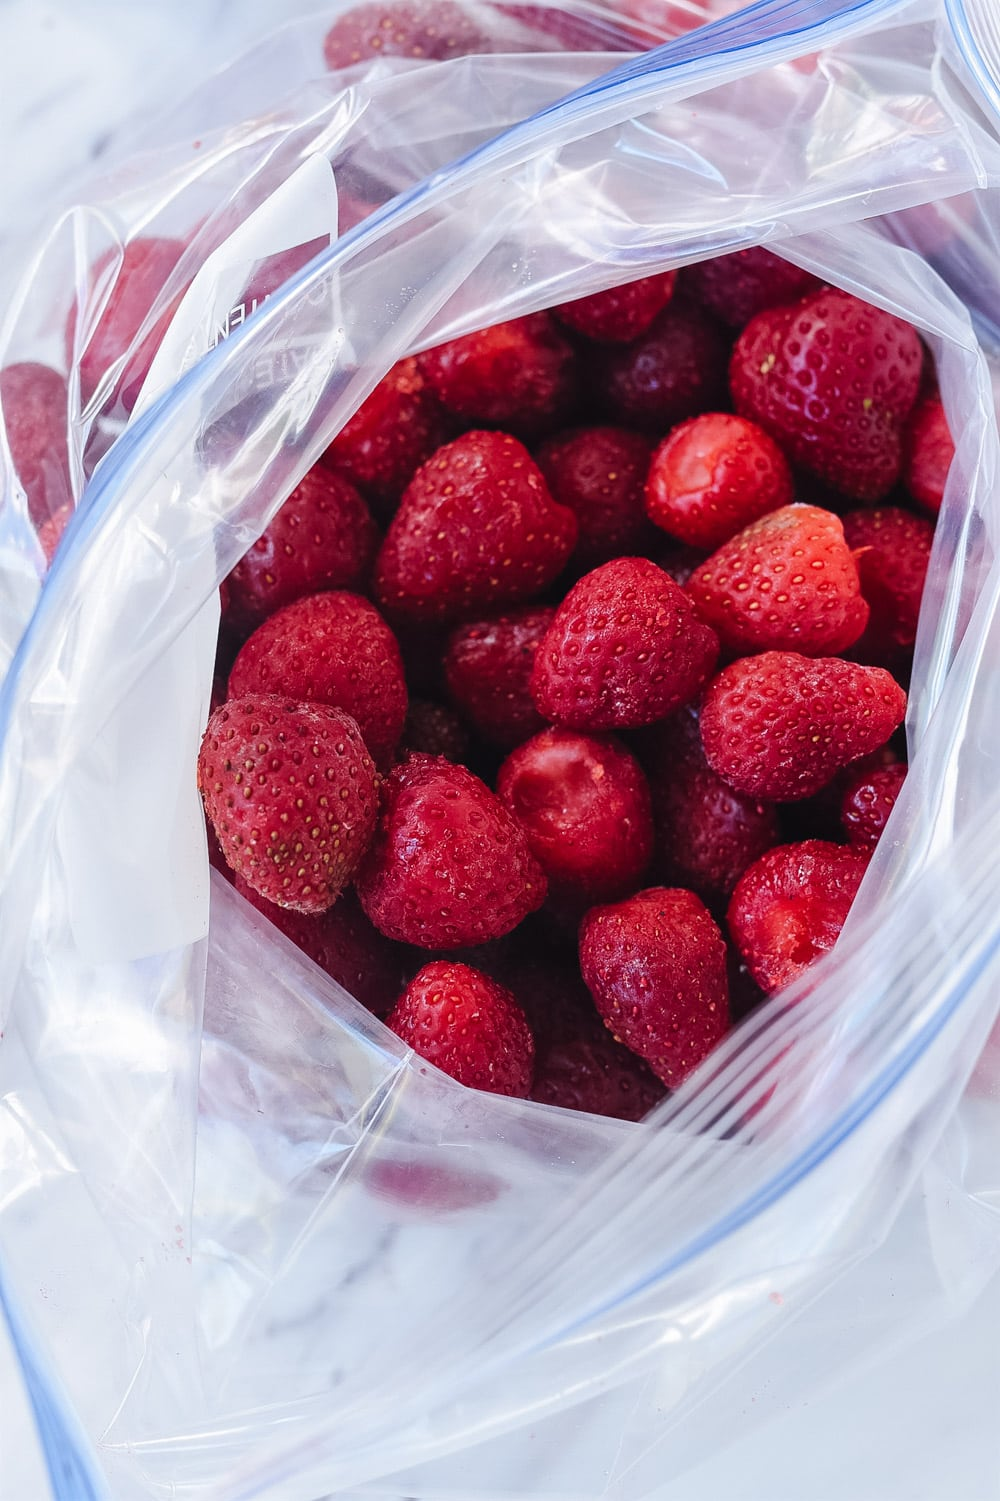 Frozen strawberries in a bag